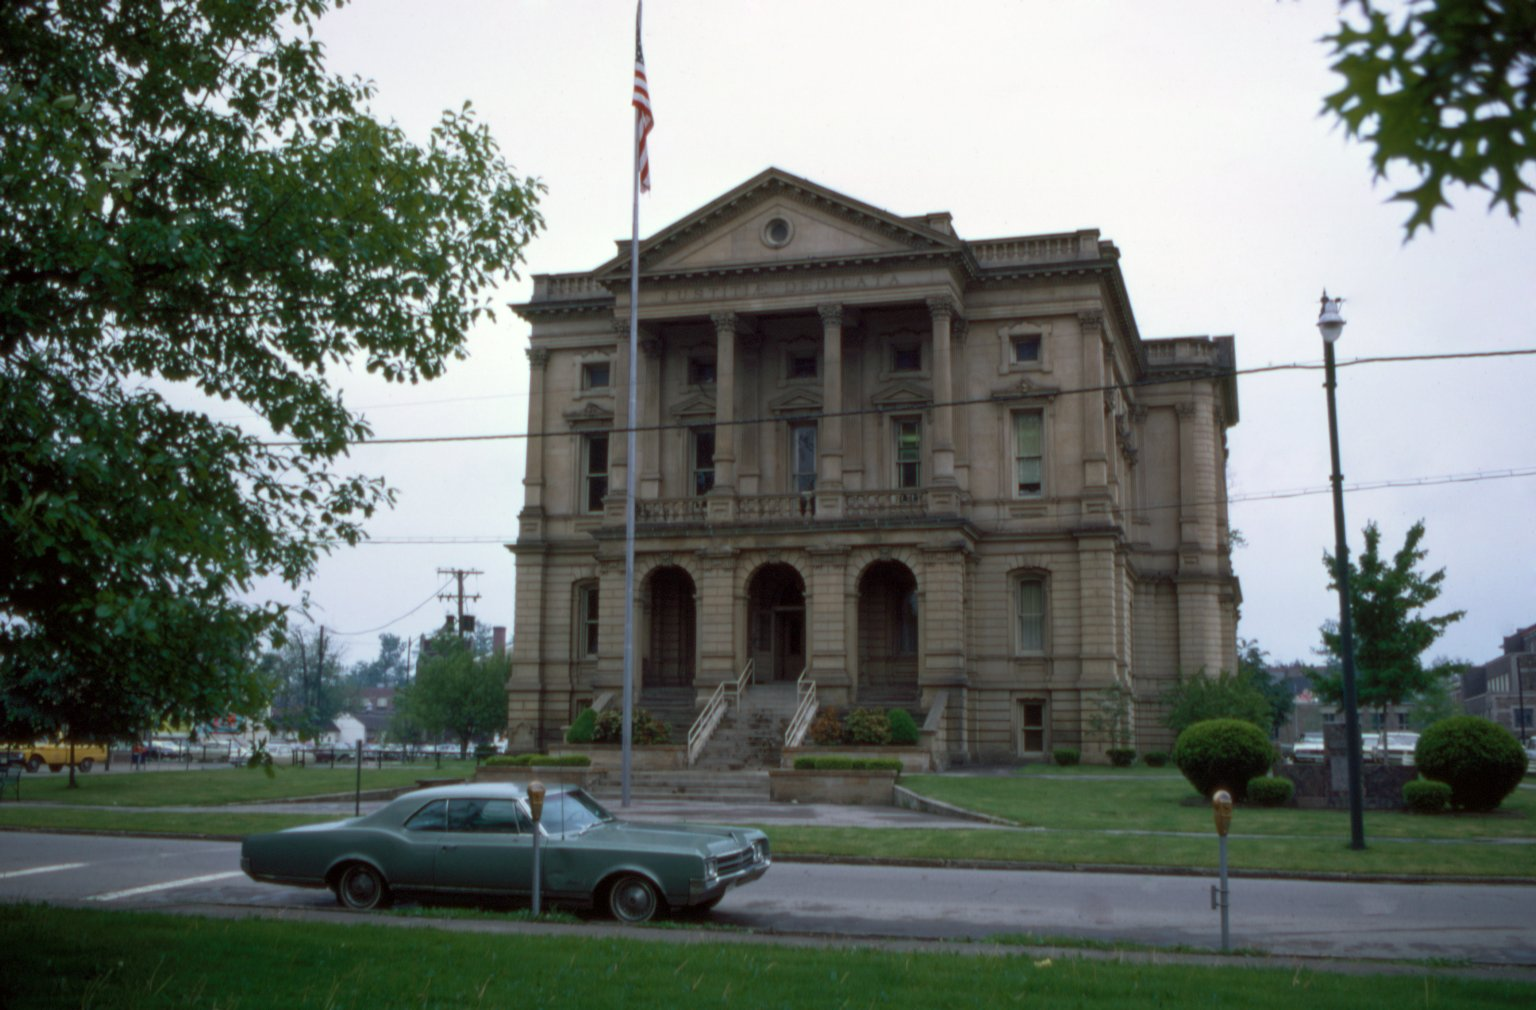 Lorain County Courthouse